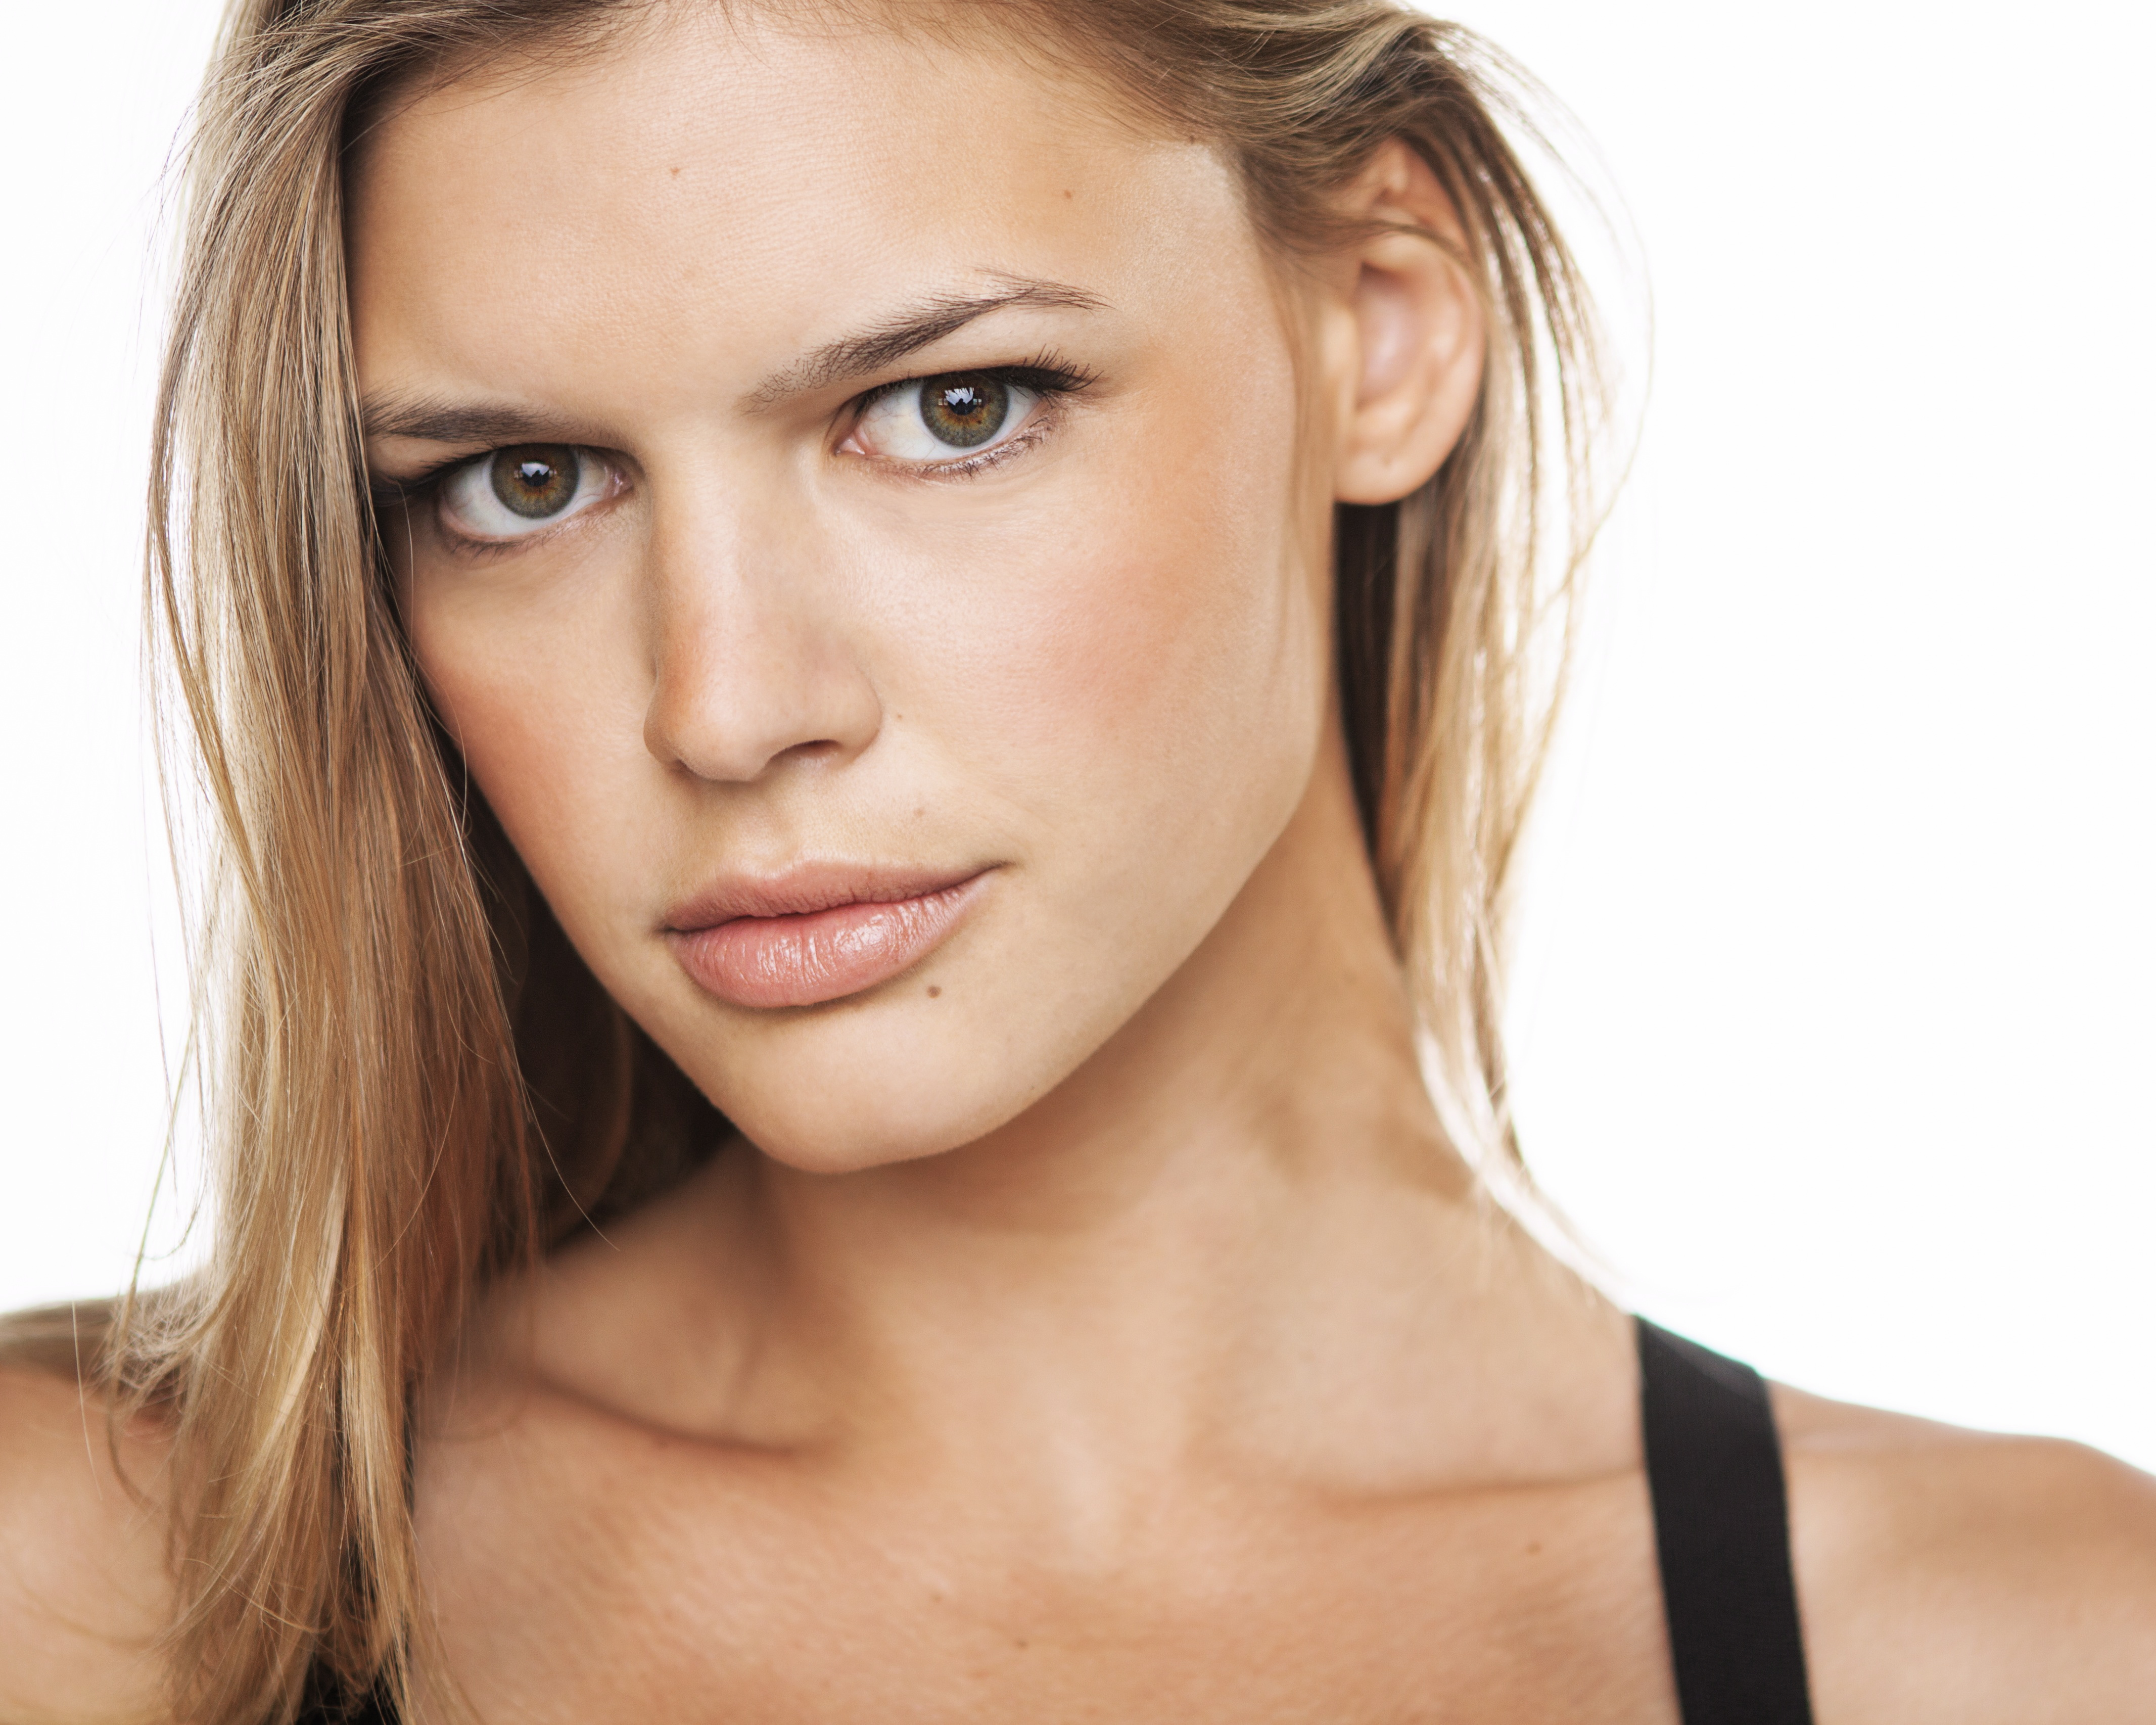 Kelly Rohrbach Wallpapers Hd